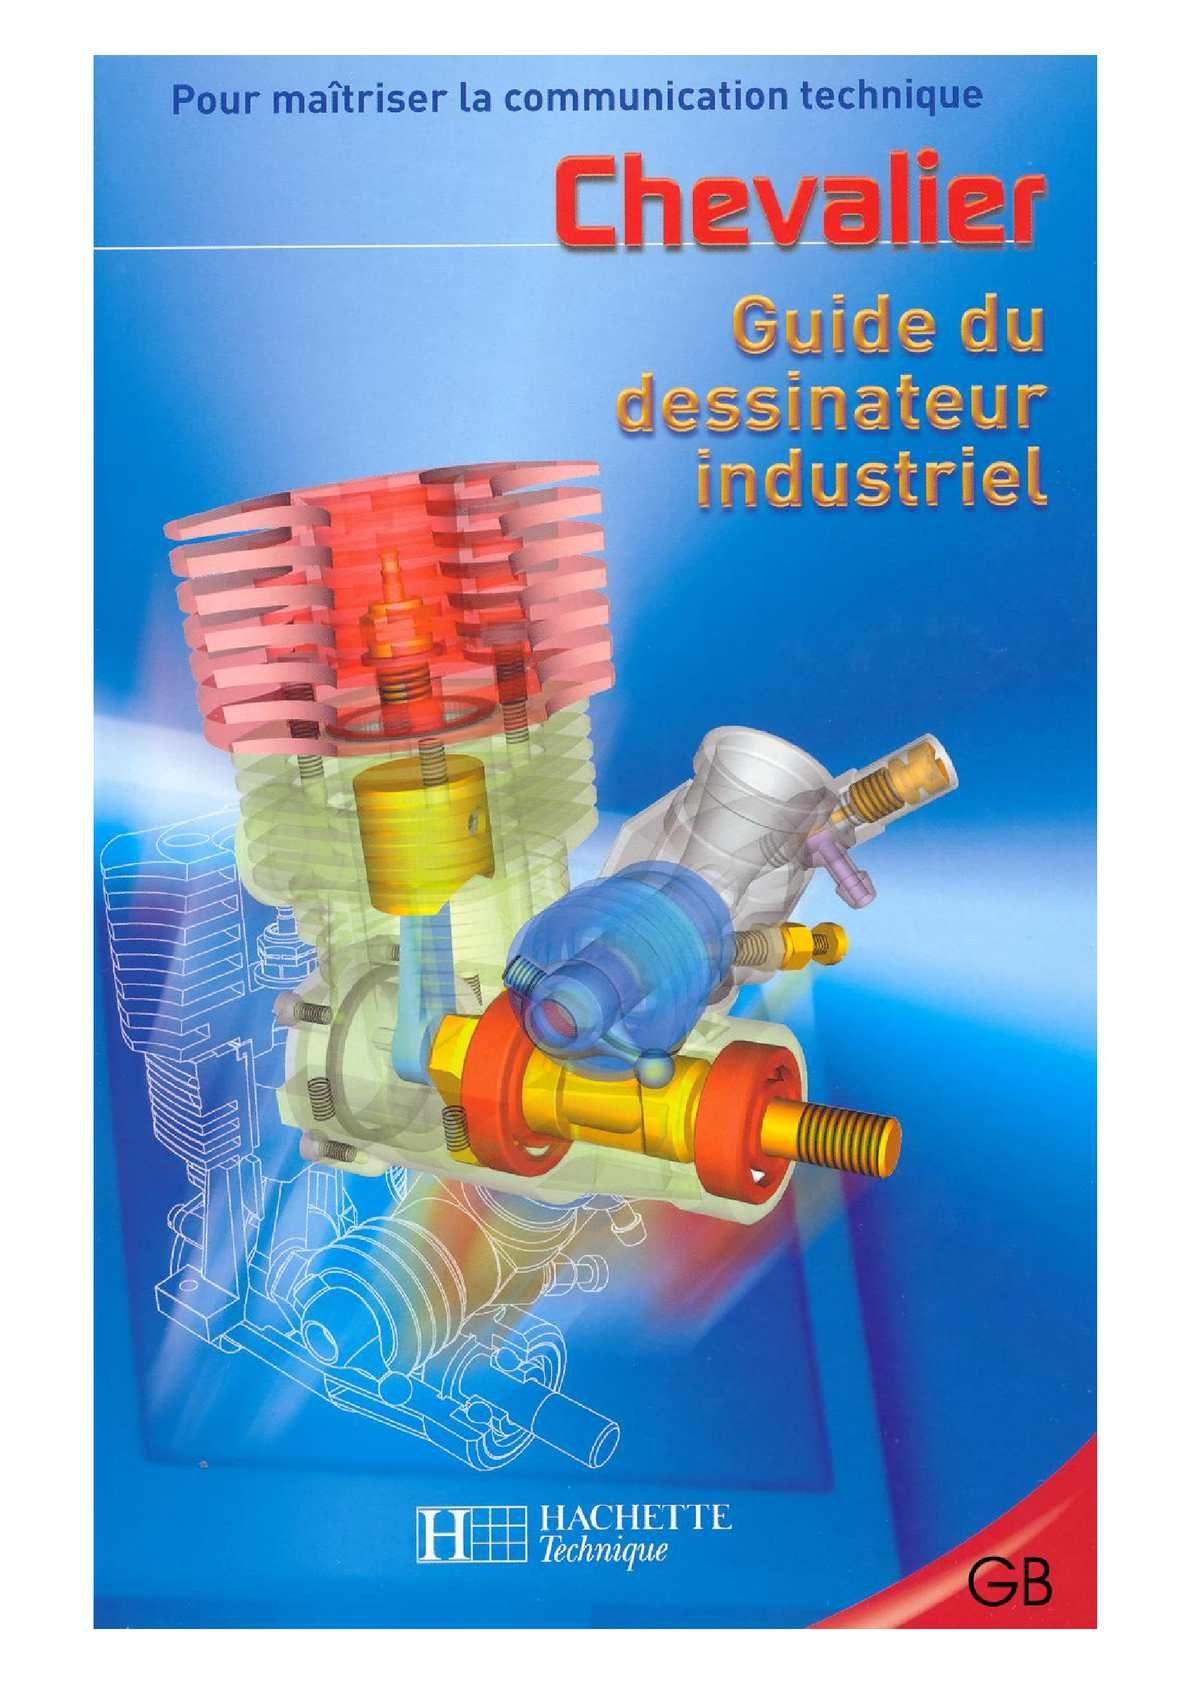 Guide Du Dessinateur Industriel Pdf : guide, dessinateur, industriel, Print, Guide, Dessinateur, Industriel, Chevalier, Books, Online,, Books,, Orthographic, Drawing